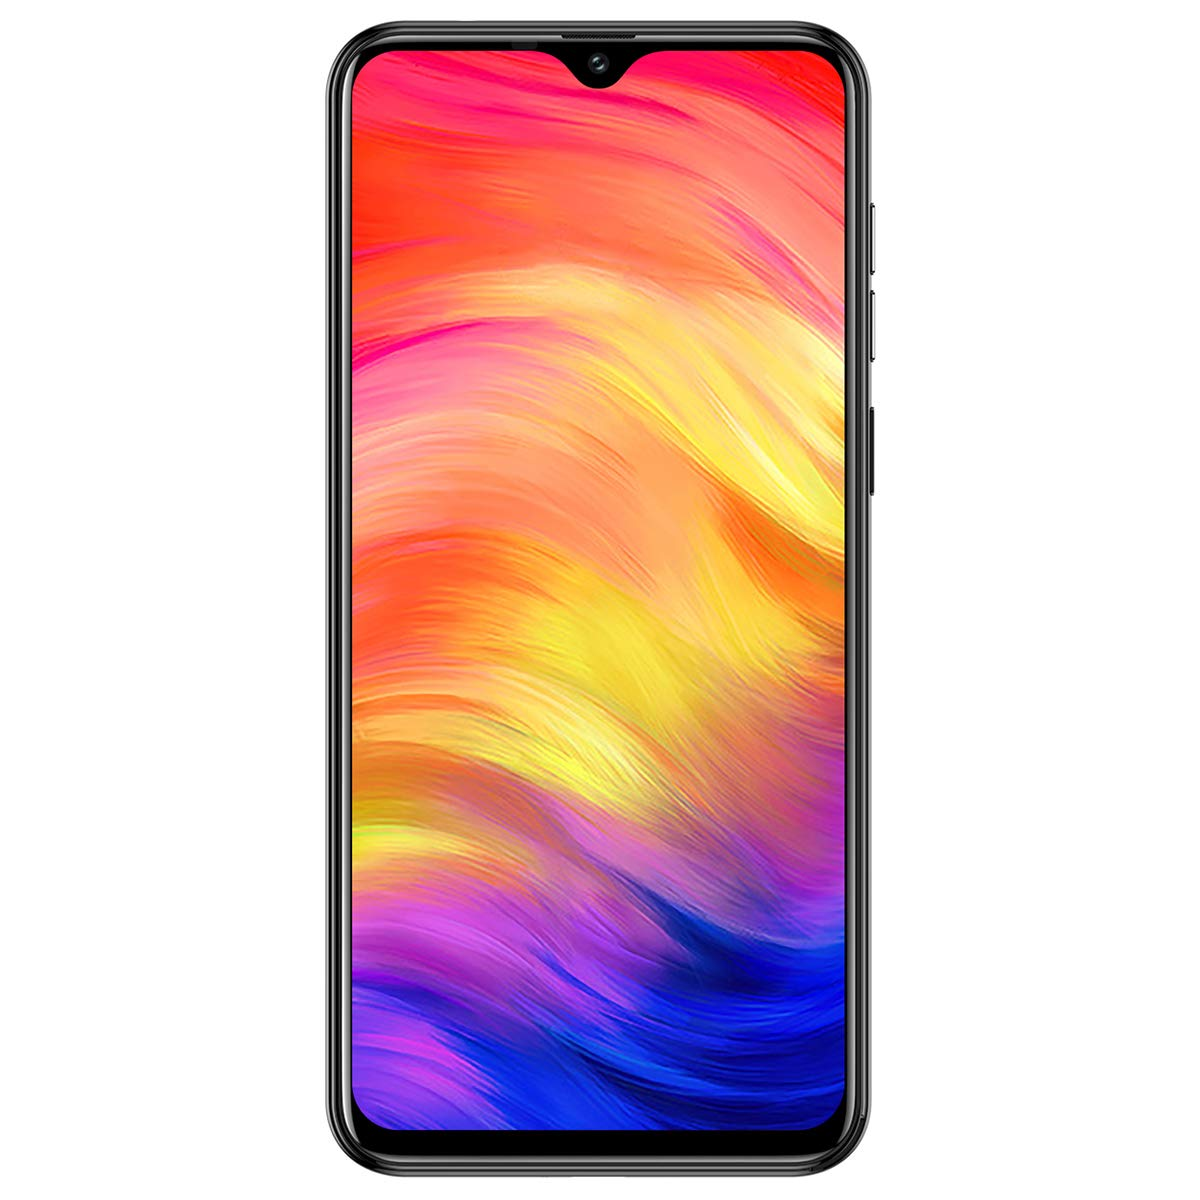 Unlocked Smartphone, Ulefone Note 7 (2019) Triple Rear Camera 3G Unlocked Cell Phones, Triple Card Slots, 6.1'' Waterdrop Full-Screen Dual SIM Android Phone, 3500mAh, Face Unlock, US Version - Black by Ulefone